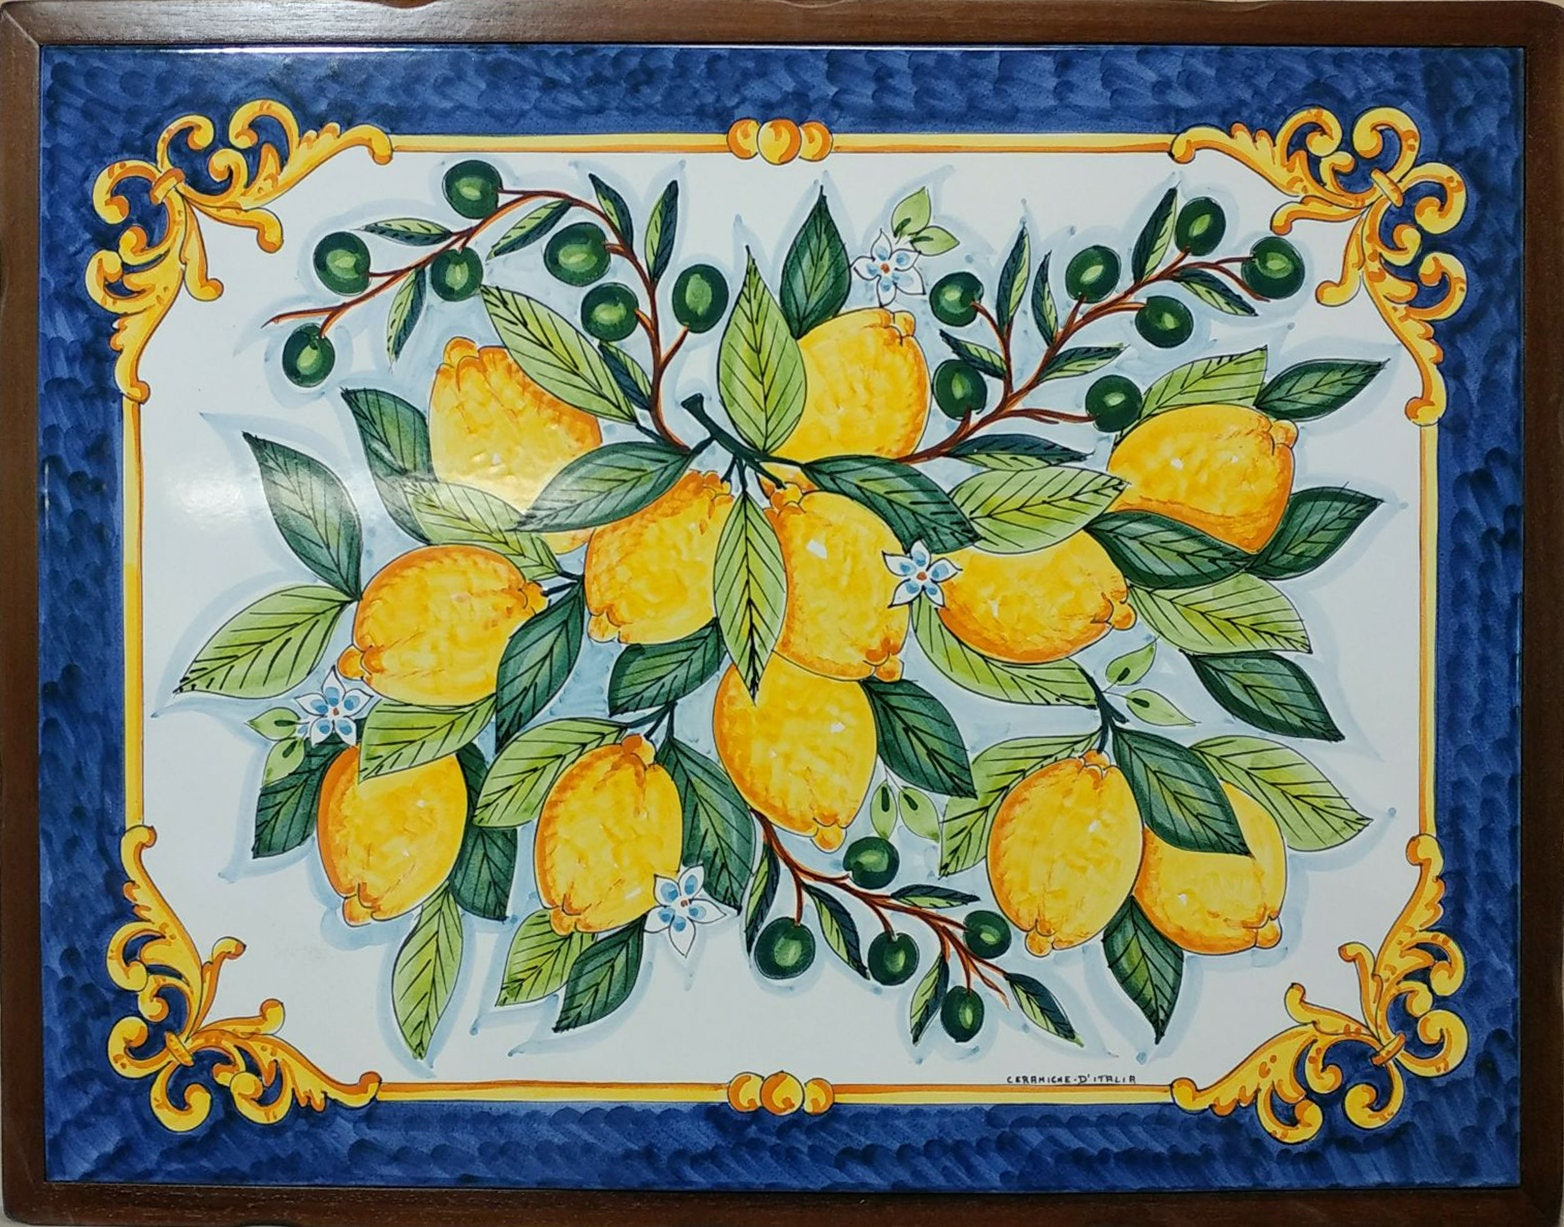 Decorative Wall Mounting Ceramic Large Tile in its own Stylish